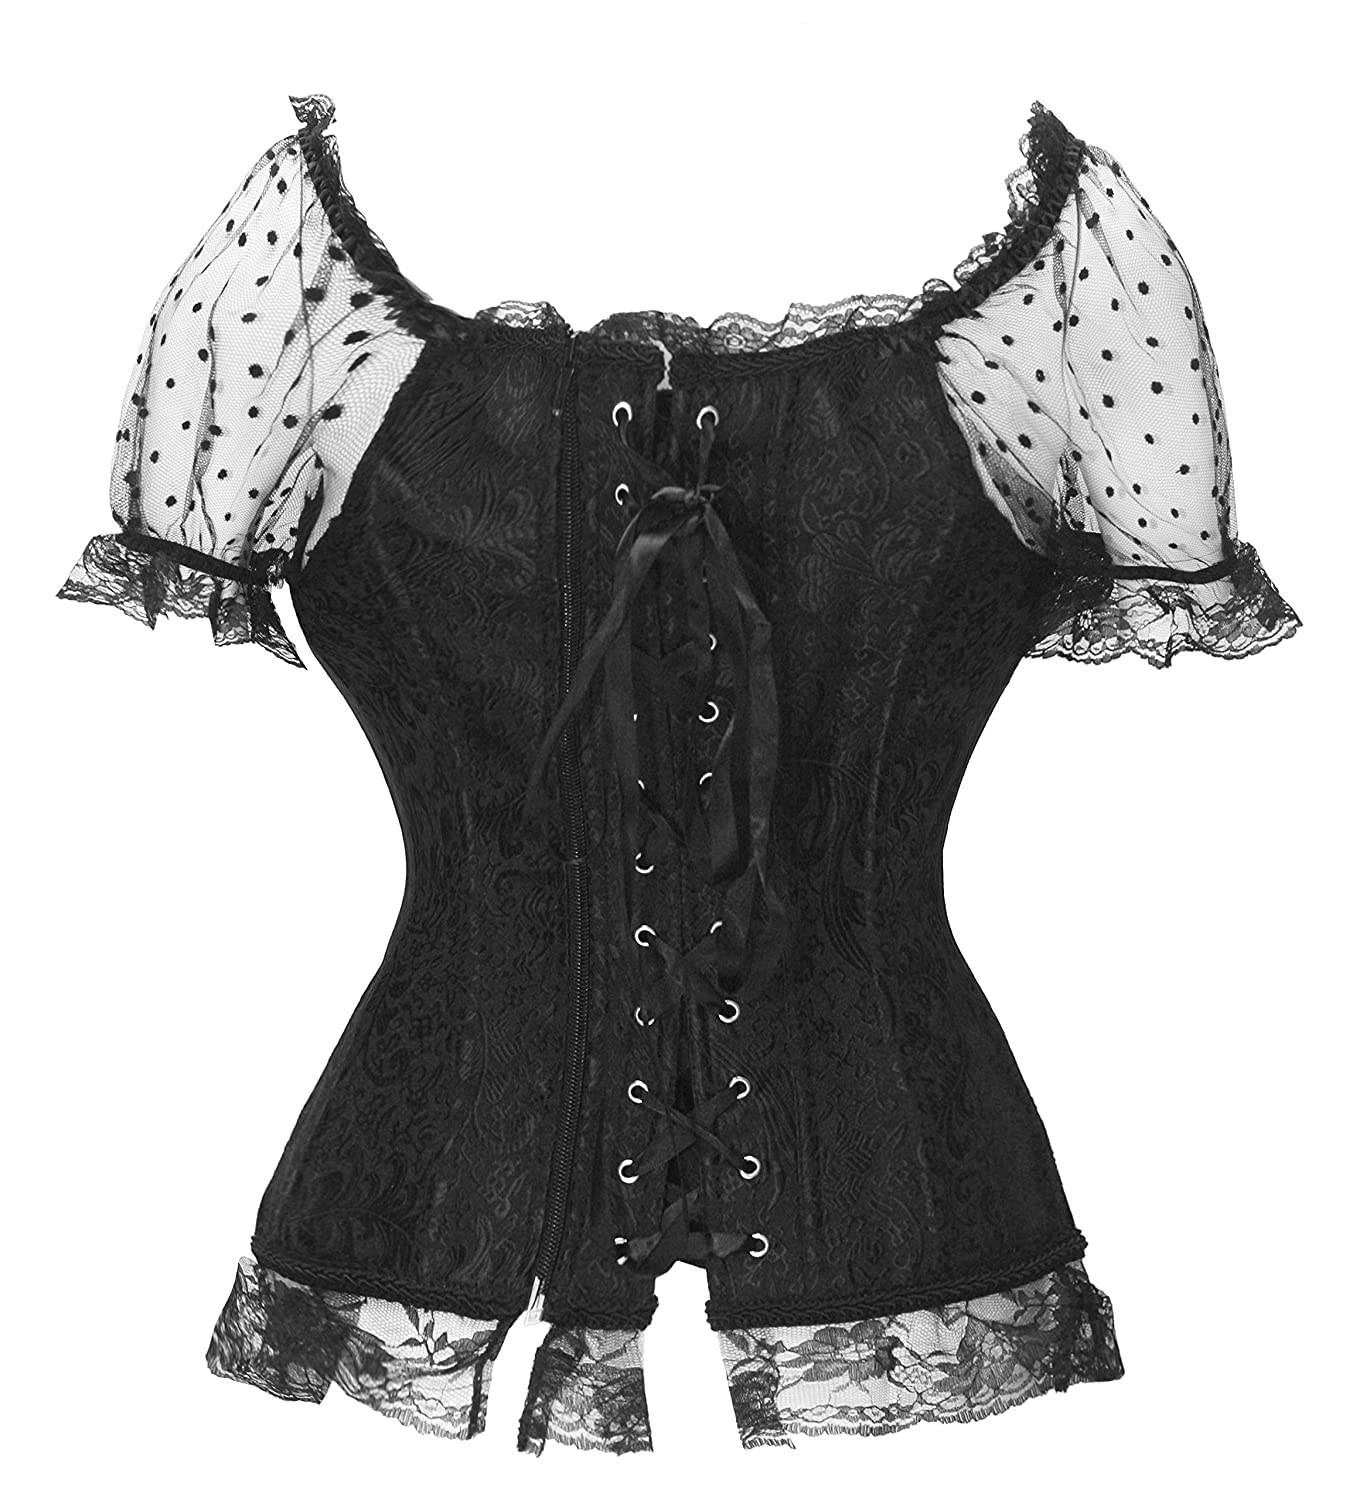 583bb7fb857 Amazon.com  Bslingerie Womens Halloween Costume Princess Bustier Corset  Top  Clothing